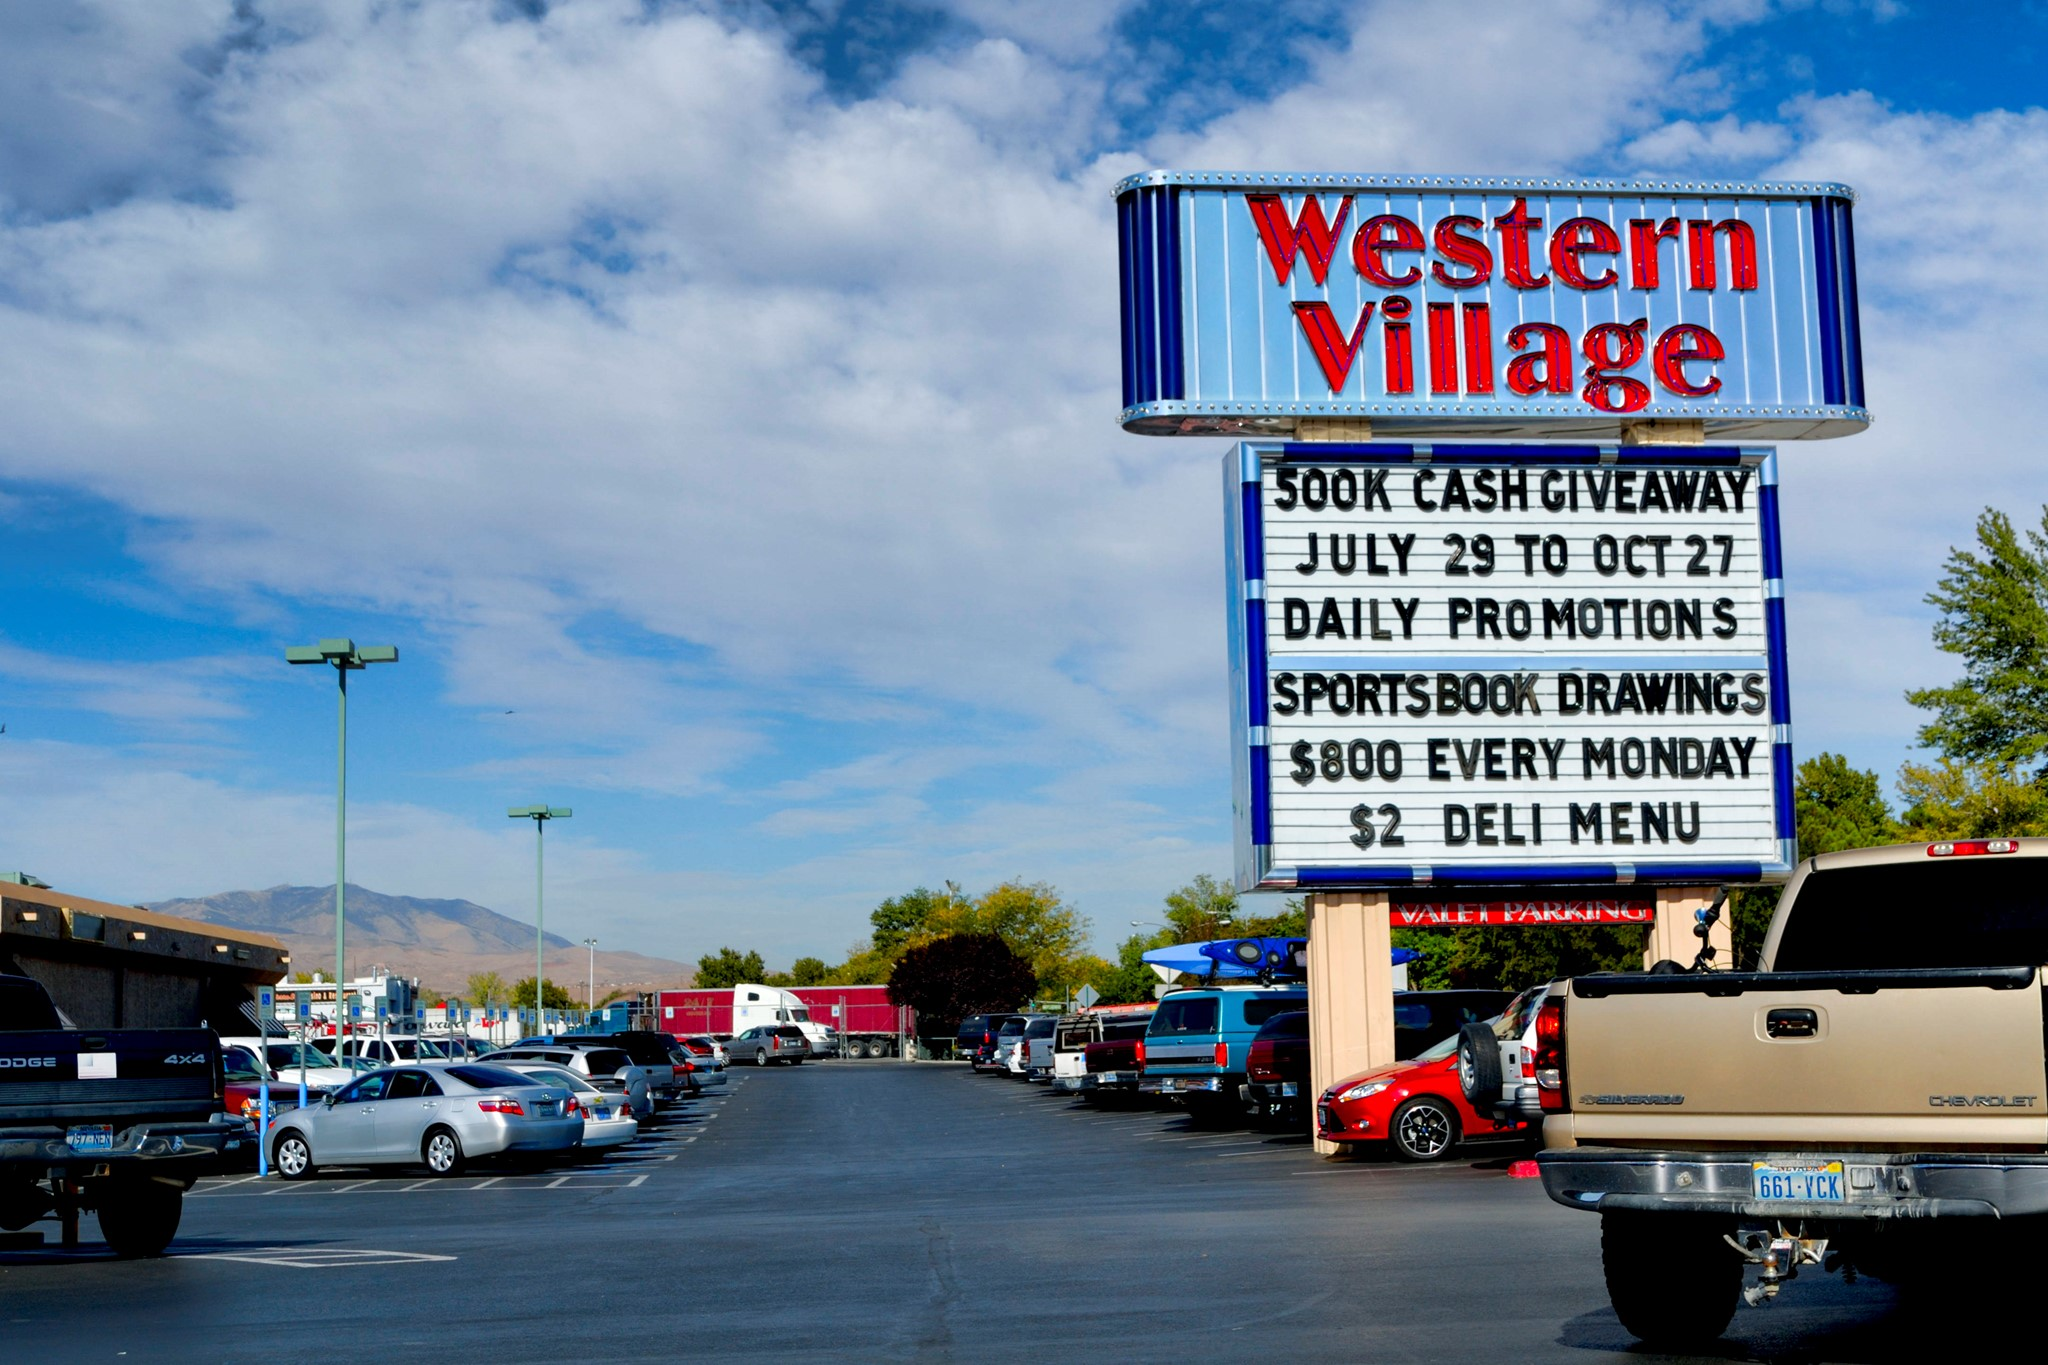 Western Village Inn and Casino